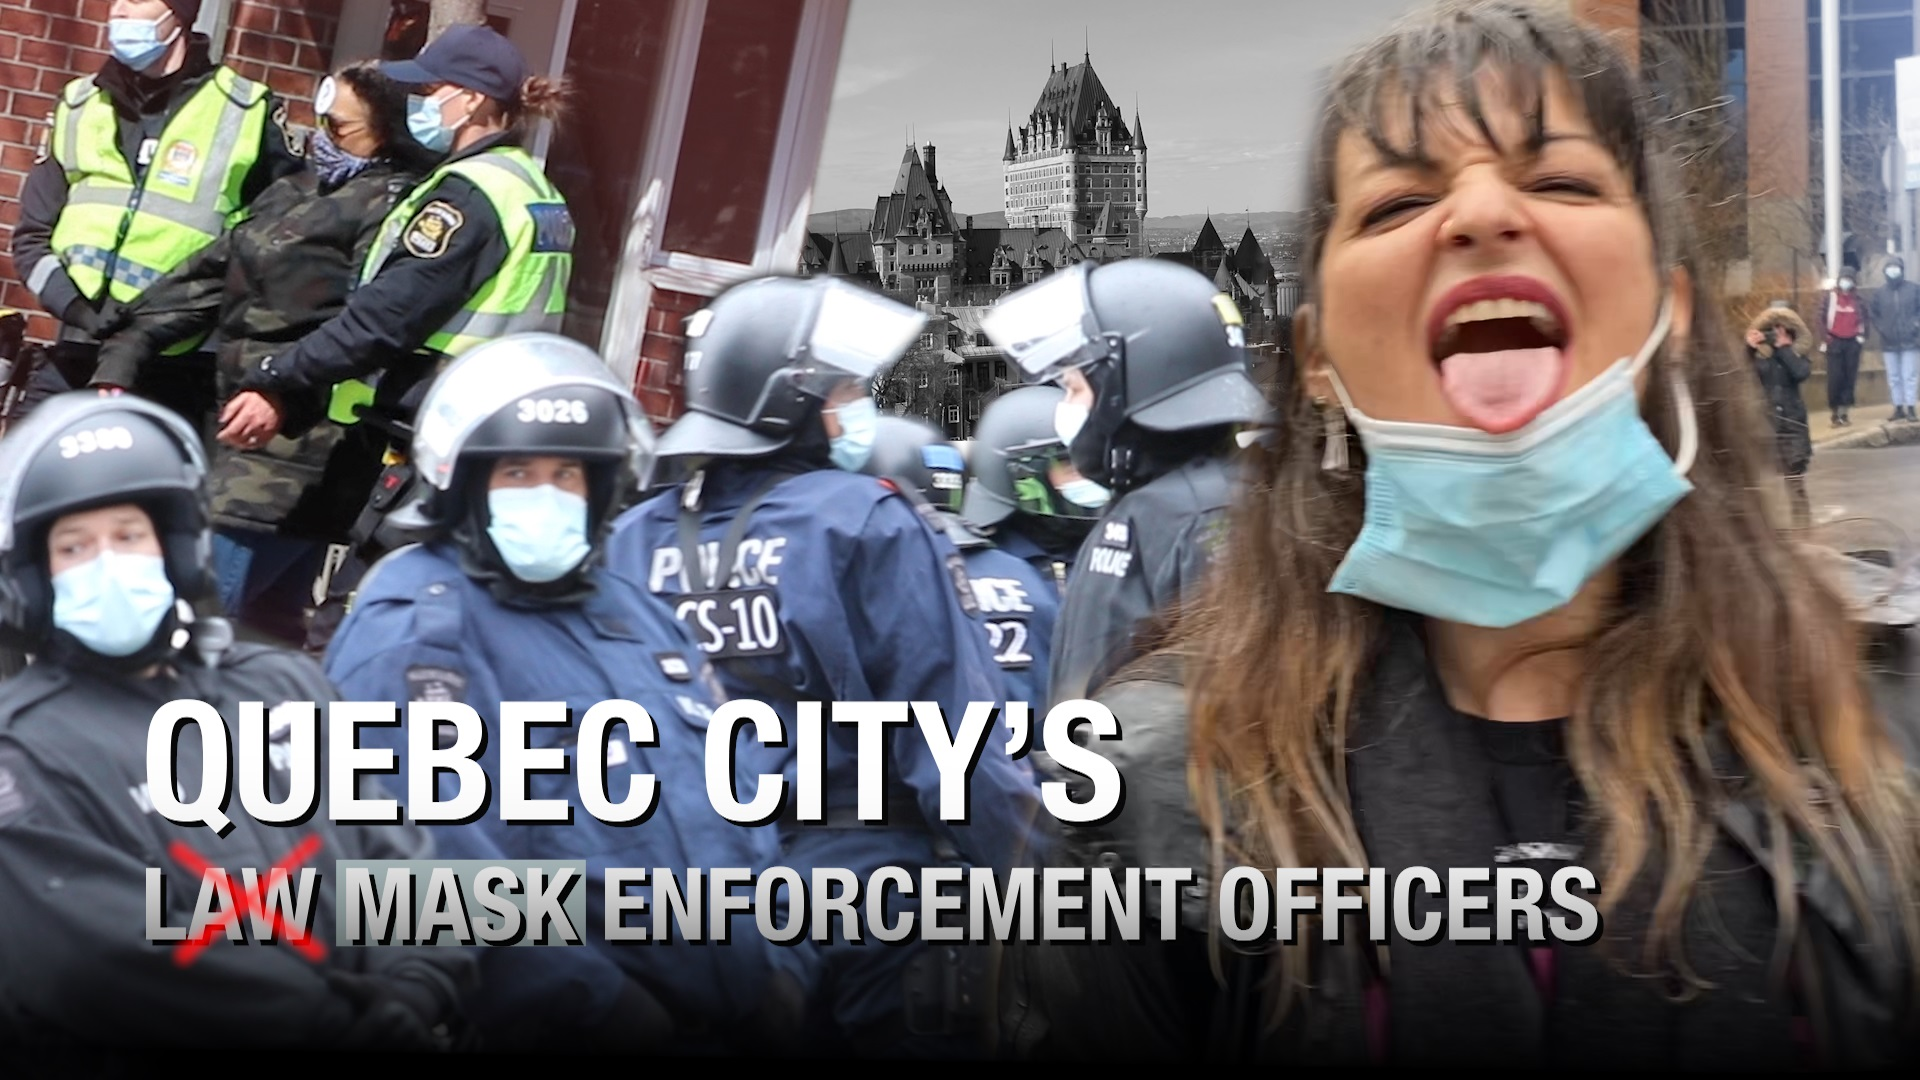 Police threaten protesters with JAIL at Quebec City anti-lockdown protest